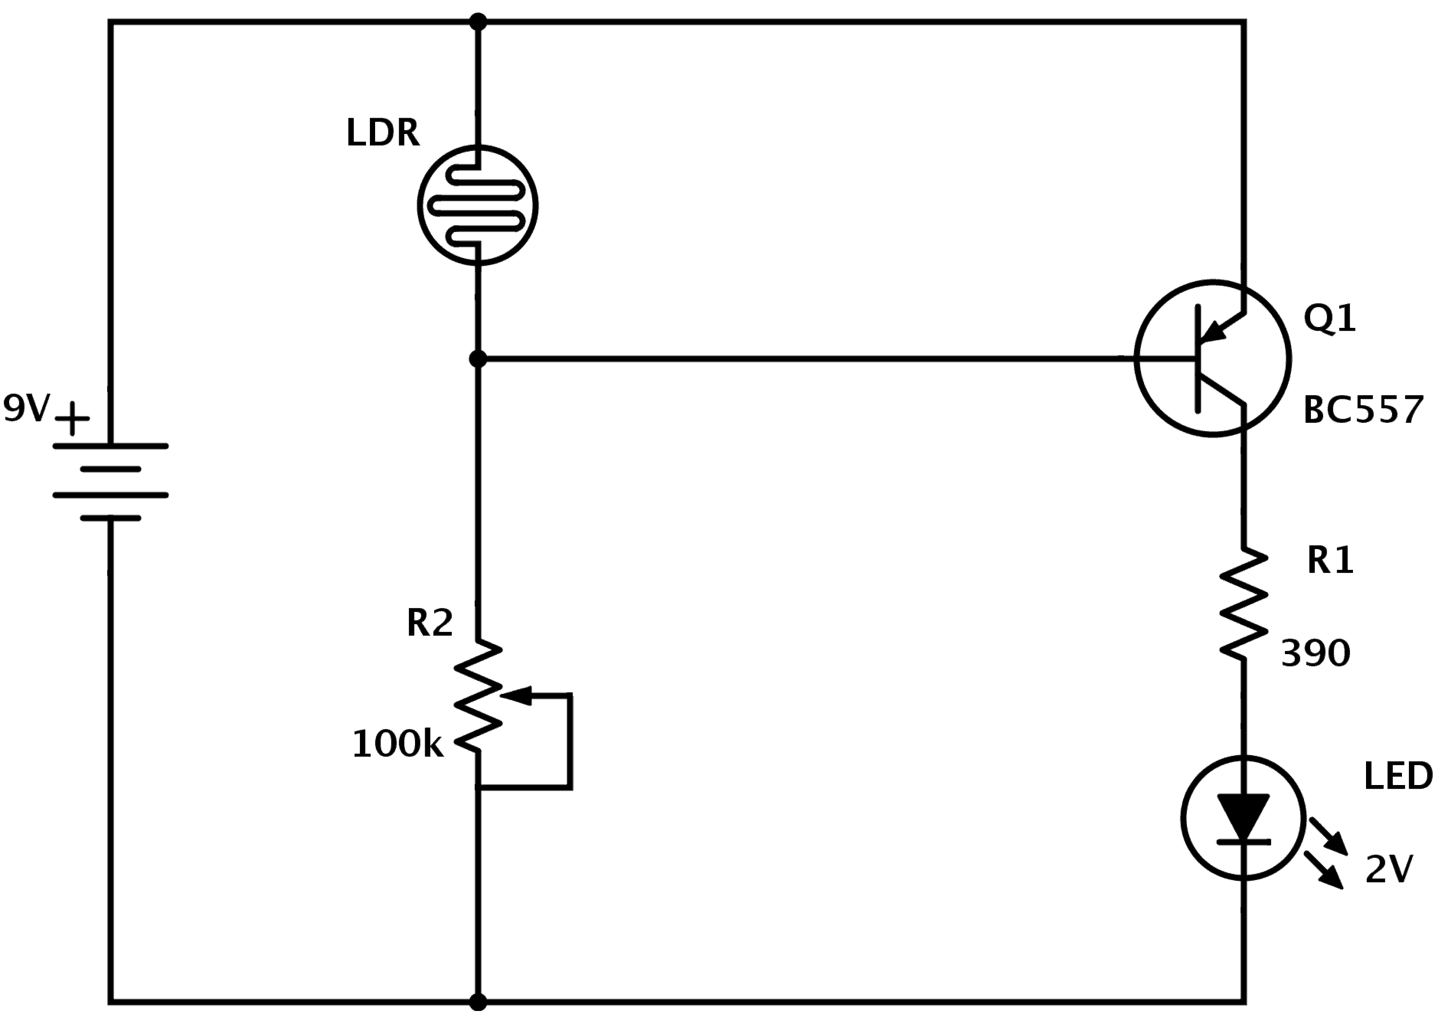 Ldr Circuit Diagram Build Electronic Circuits 12v Socket Wiring Free Picture Schematic With Pnp Transistor Dark Detector